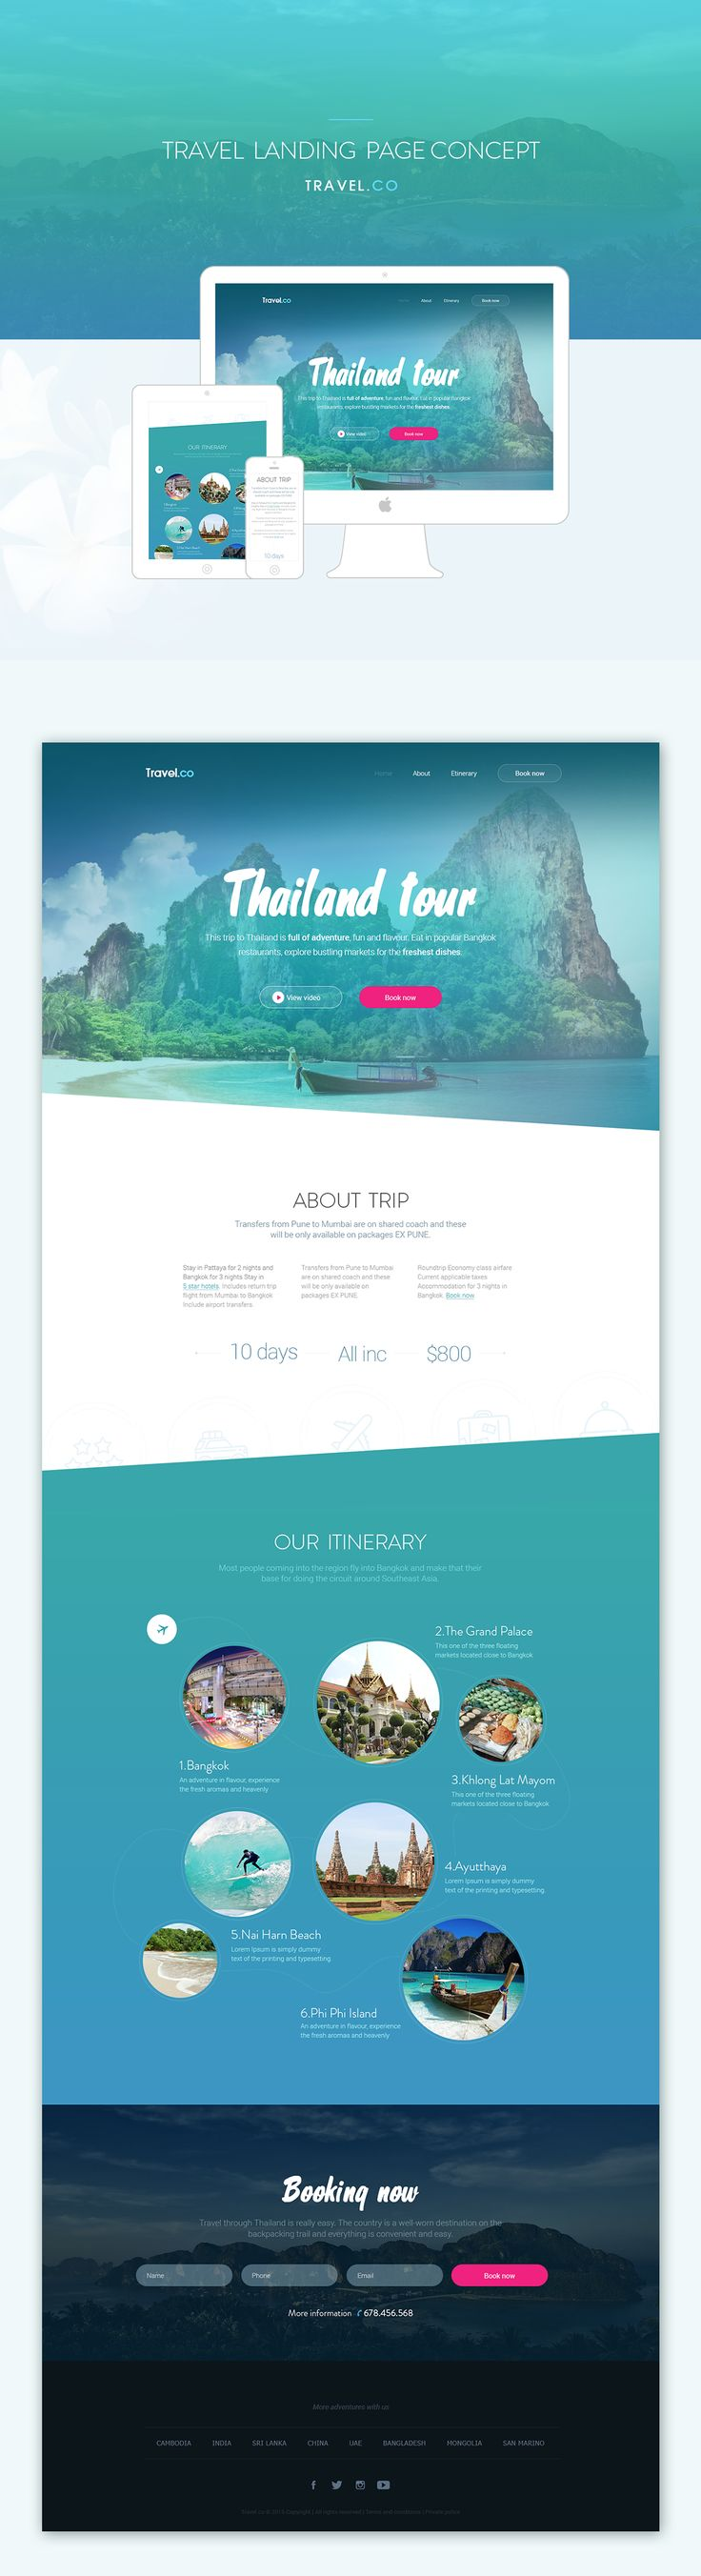 Travel landing page concept on Behance